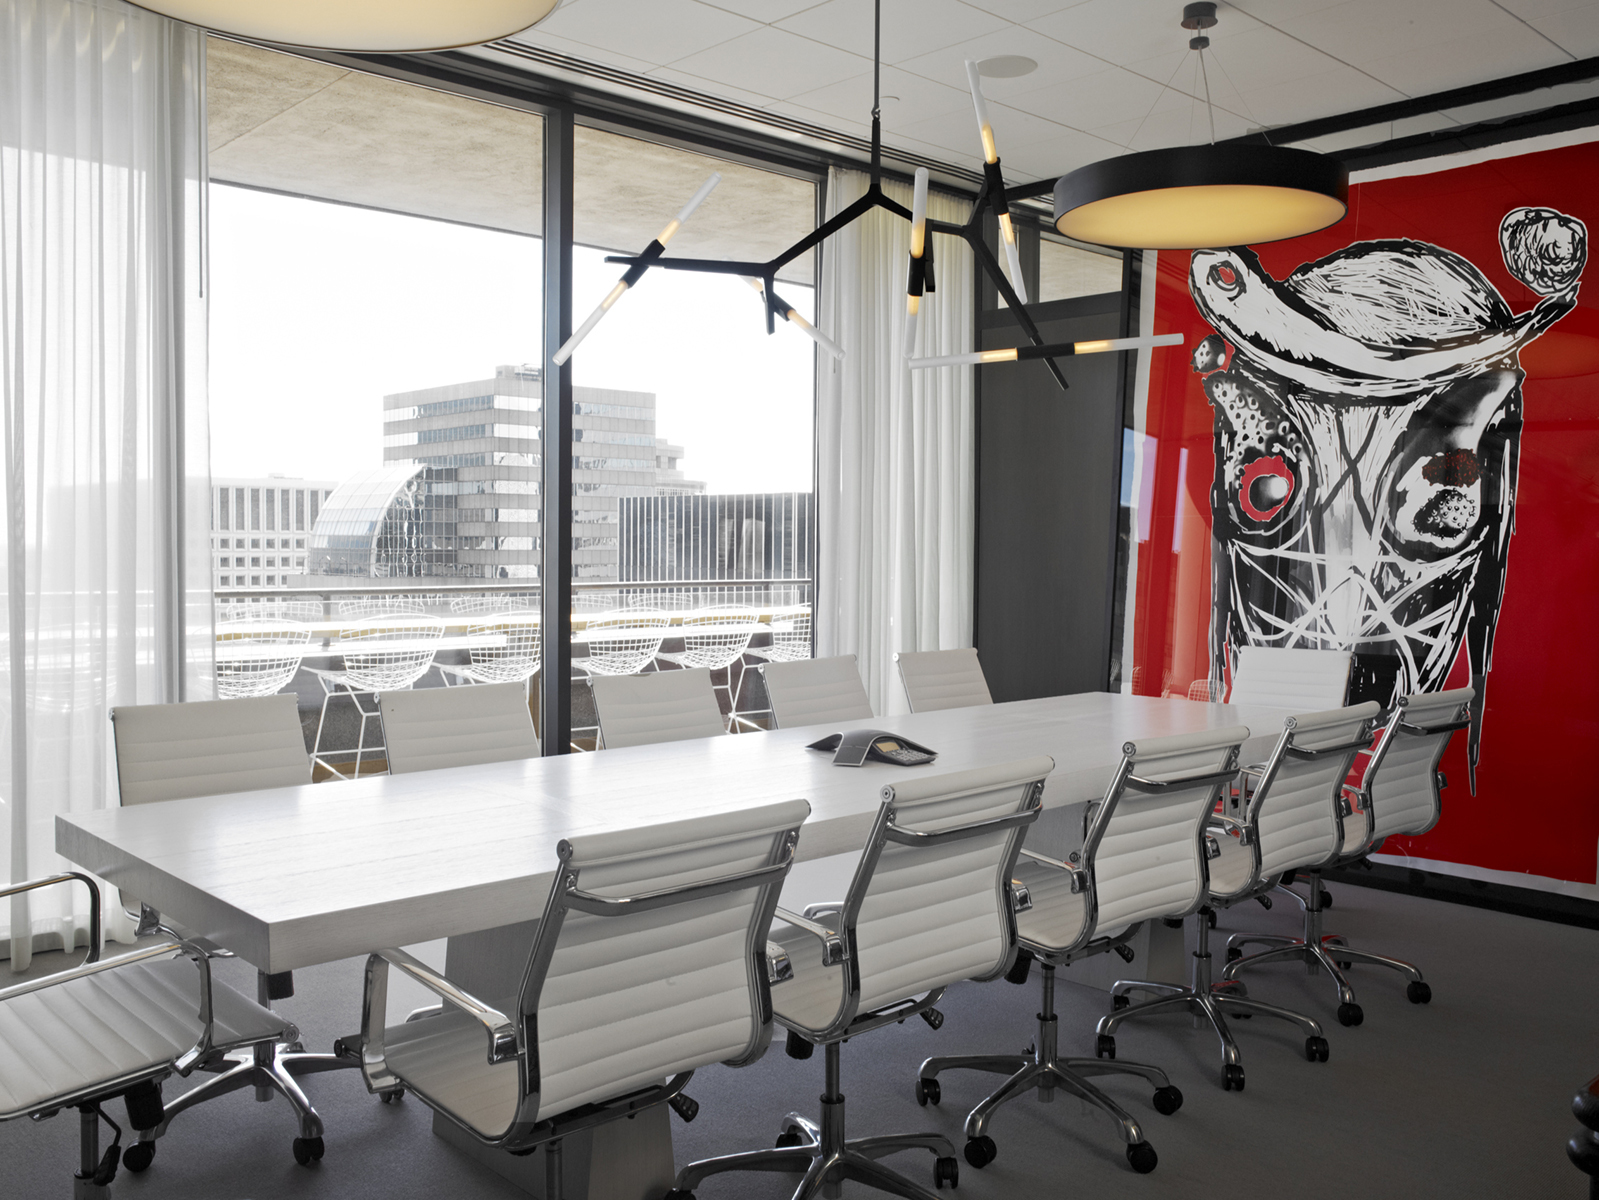 Commercial projects michel arnaud photography for Commercial interior design firms nyc